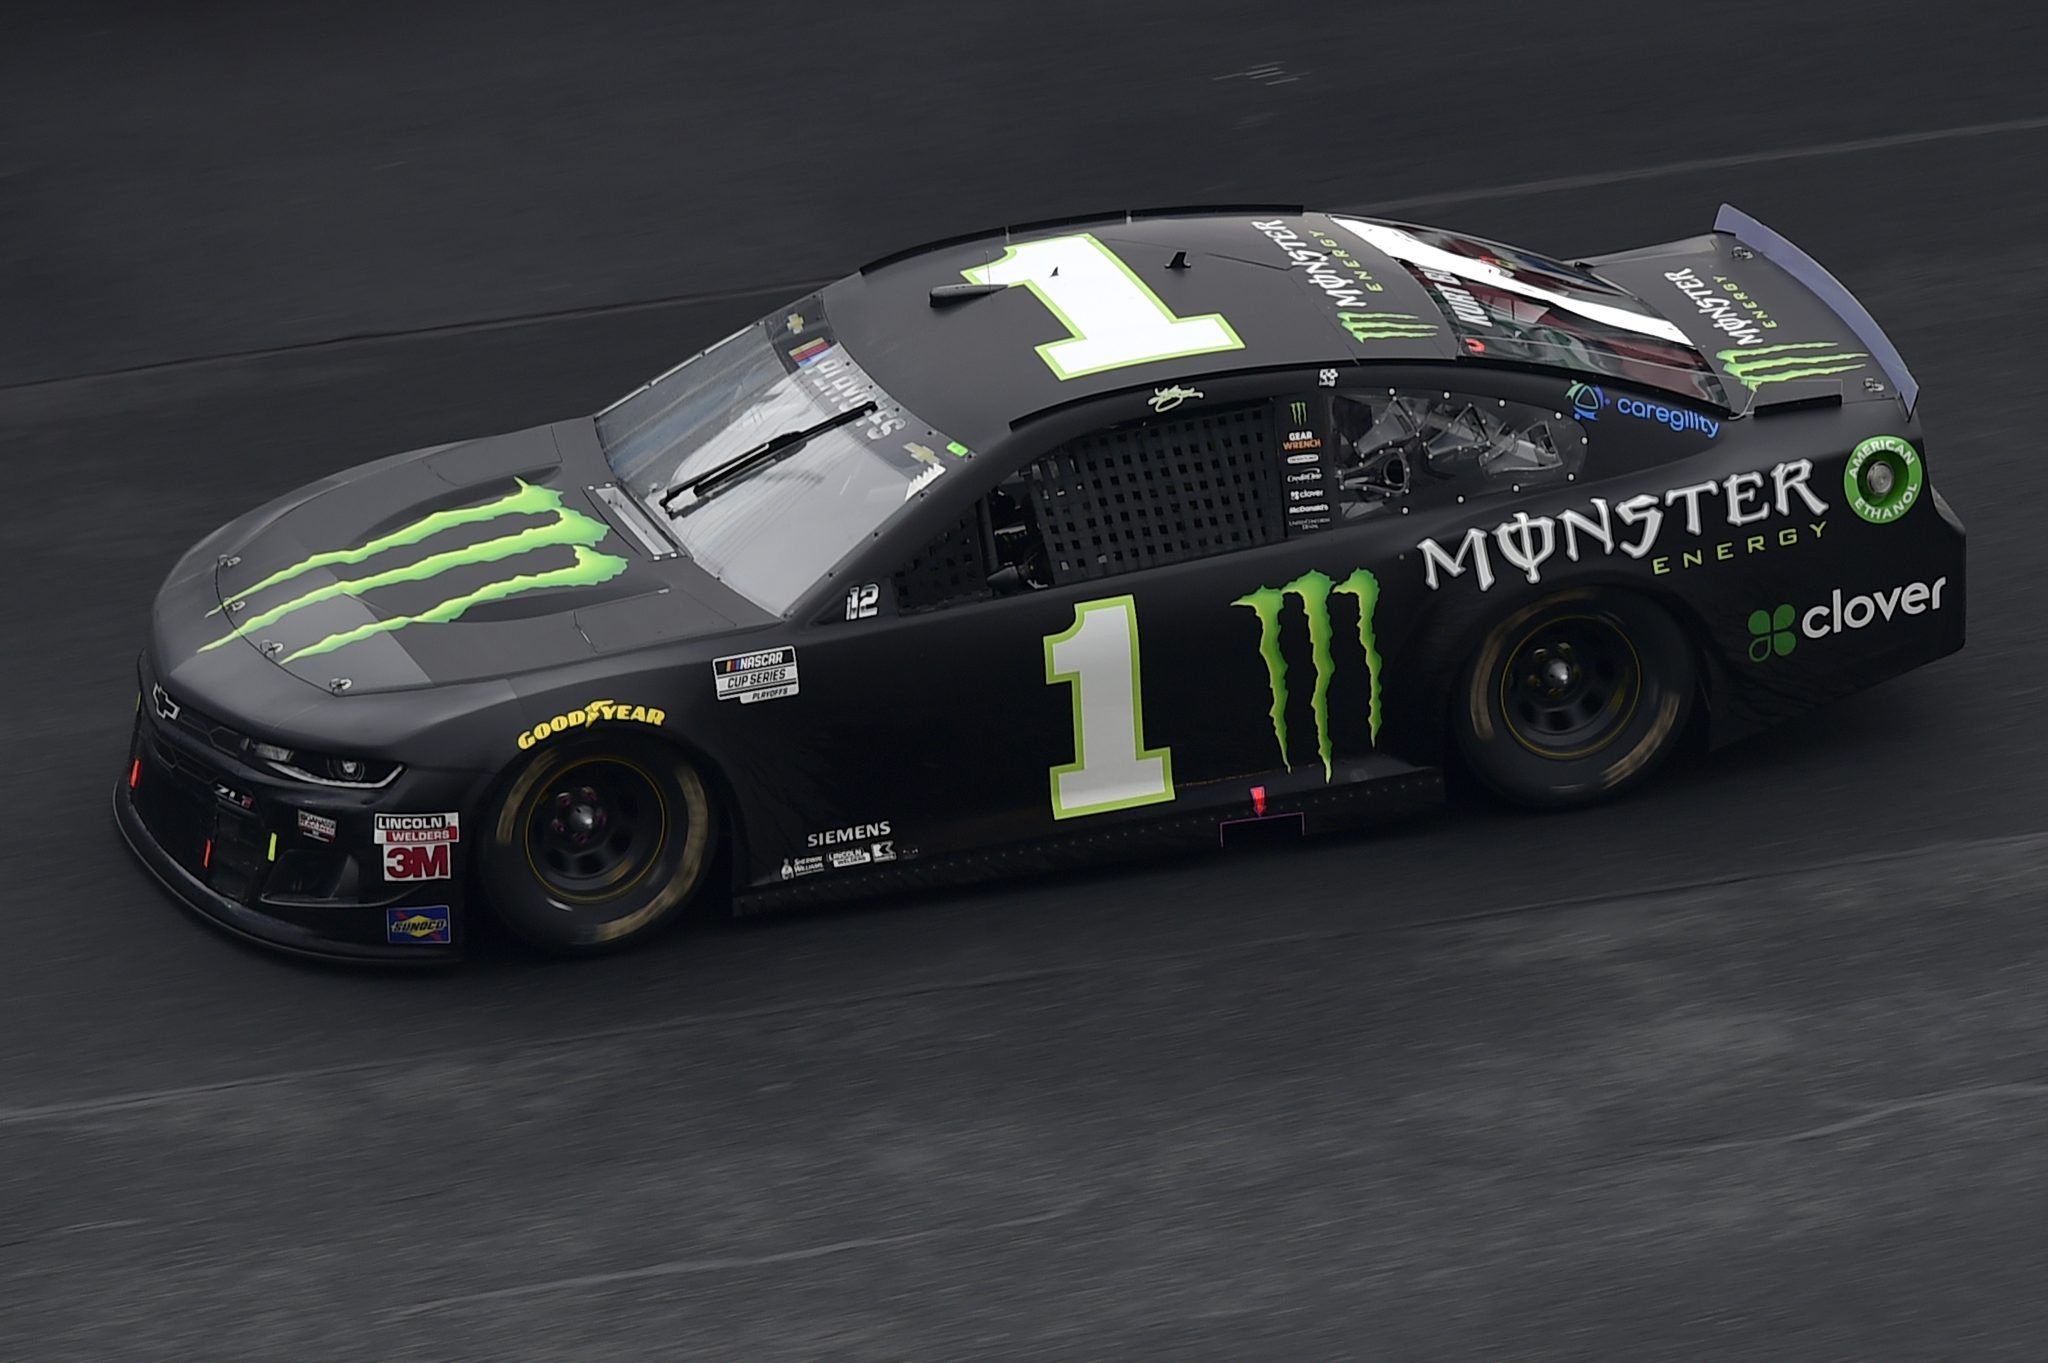 CONCORD, NORTH CAROLINA - OCTOBER 11: Kurt Busch, driver of the #1 Monster Energy Chevrolet, drives during the NASCAR Cup Series Bank of America ROVAL 400 at Charlotte Motor Speedway on October 11, 2020 in Concord, North Carolina. (Photo by Jared C. Tilton/Getty Images) | Getty Images